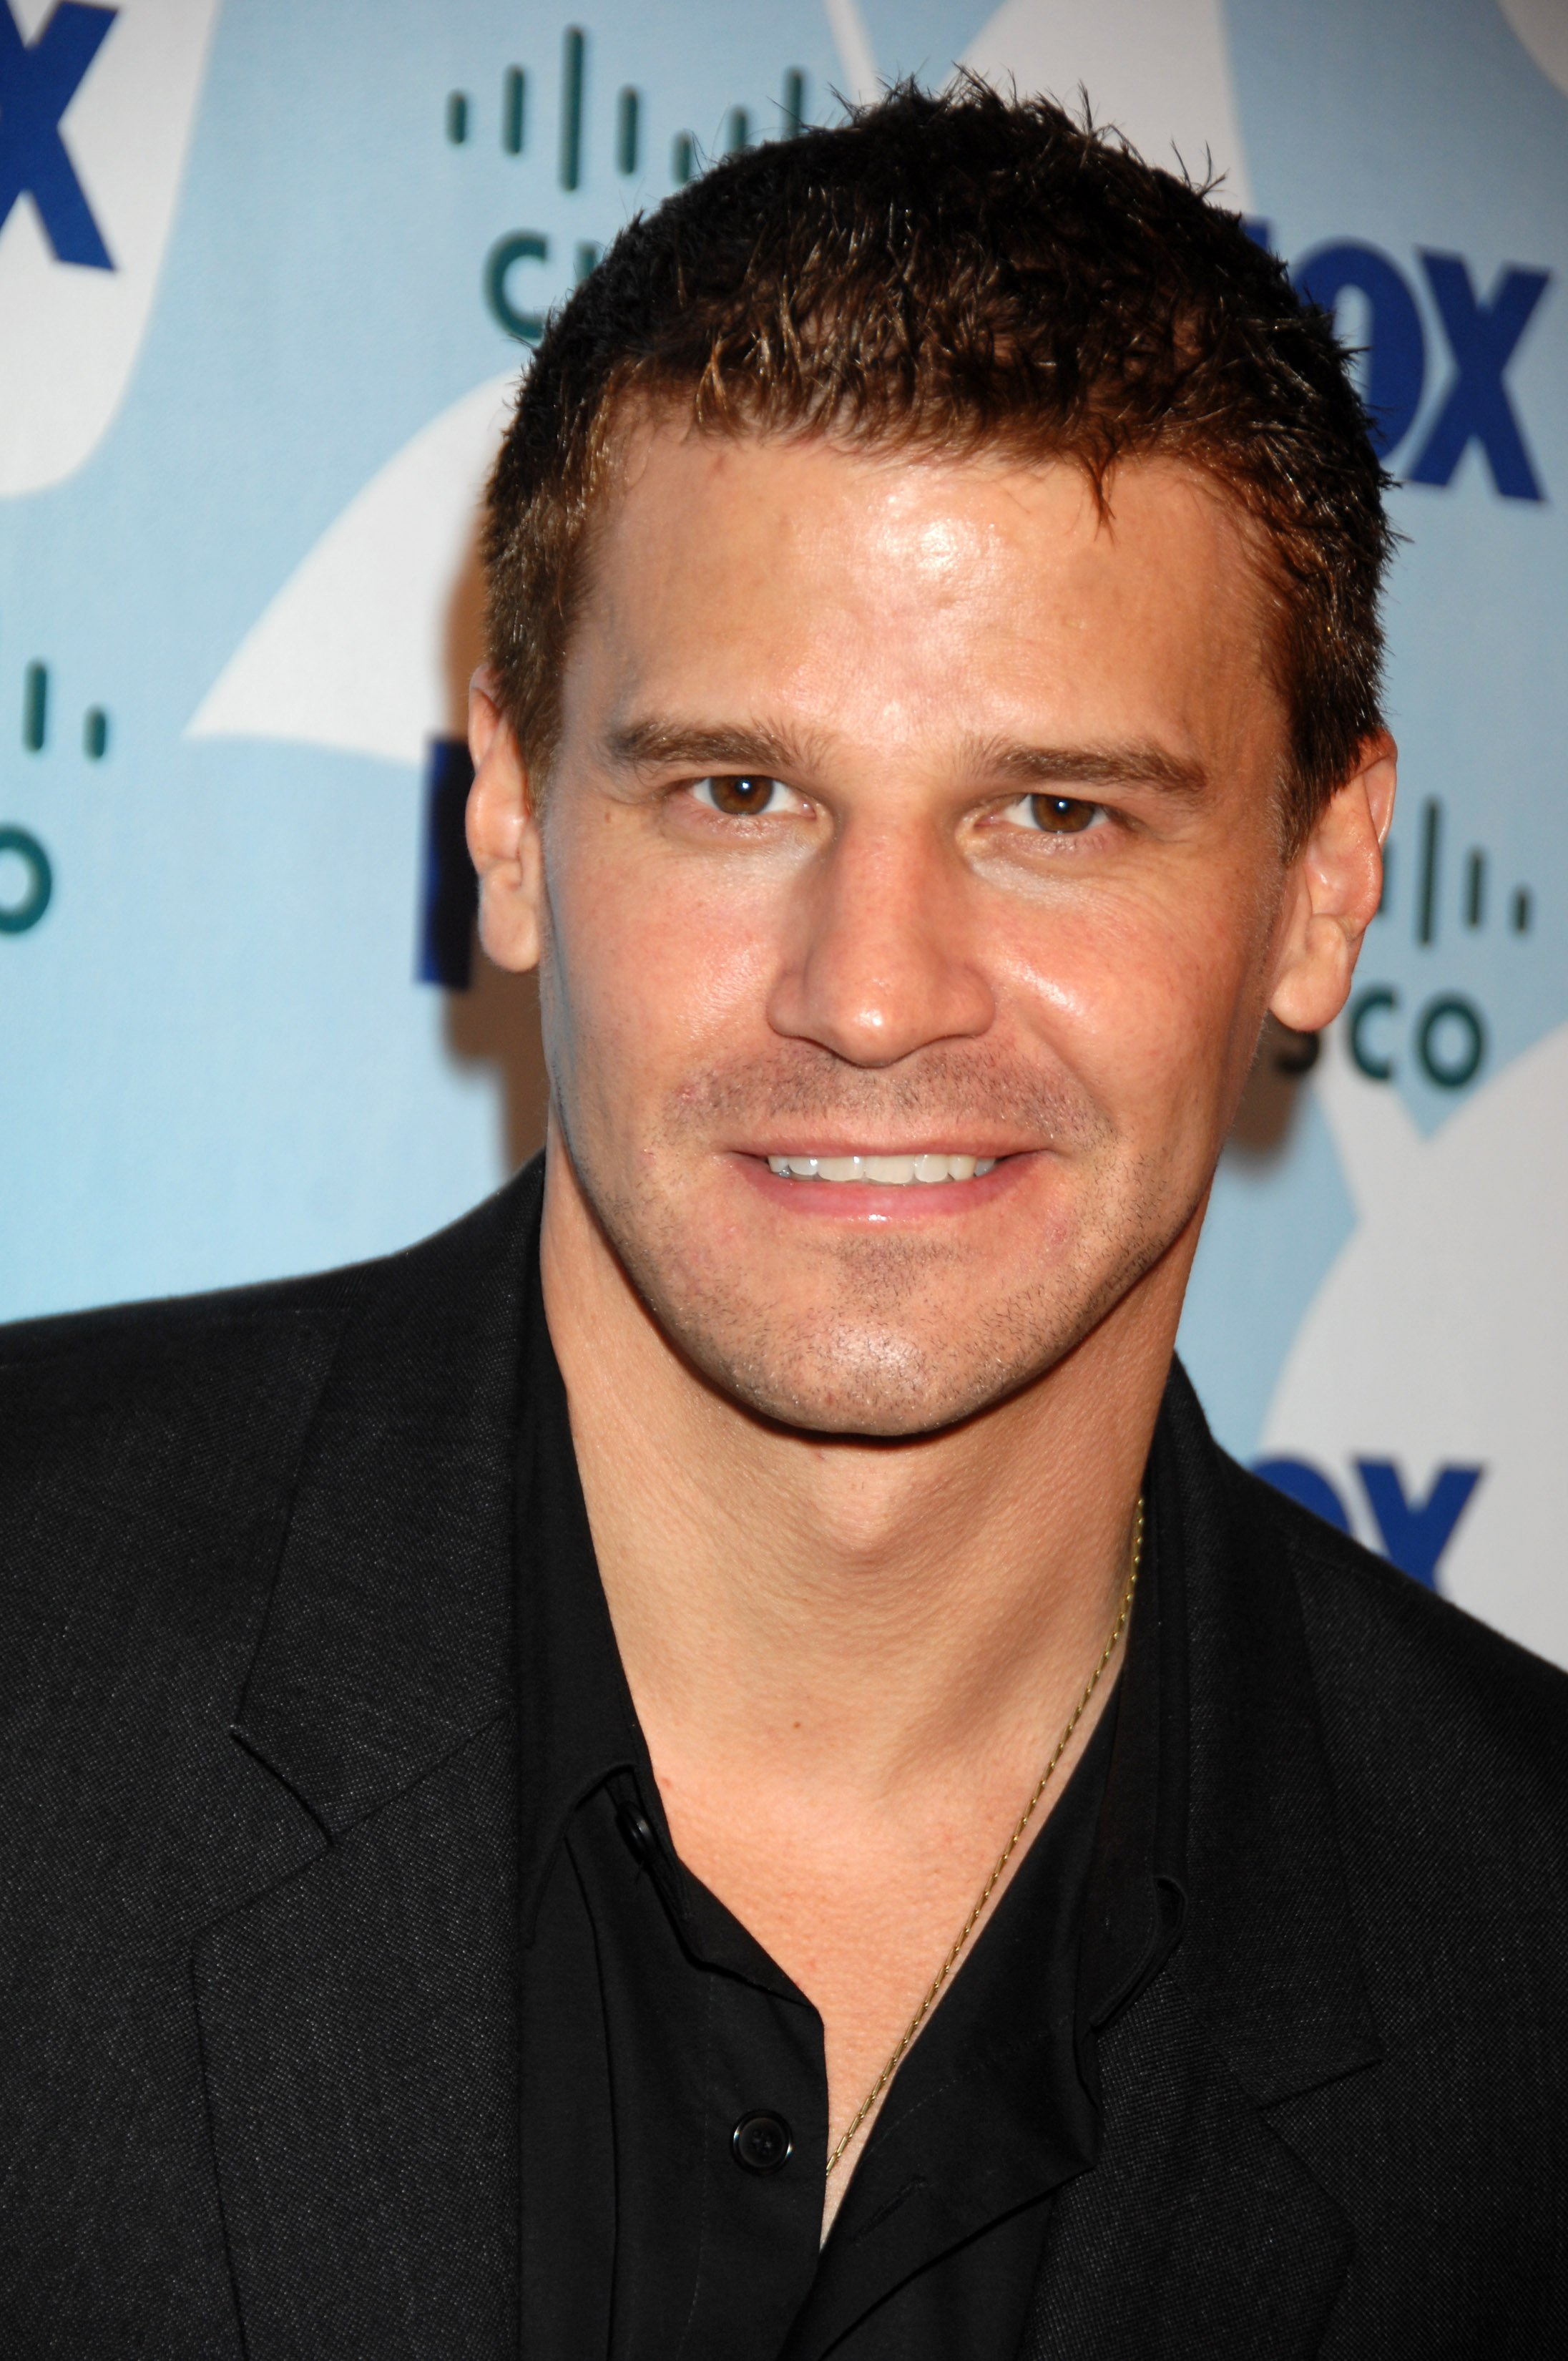 88241_David_Boreanaz_-_Fox_Fall_Eco-Casino_party_CU_ISA_0001_122_1079lo.jpg